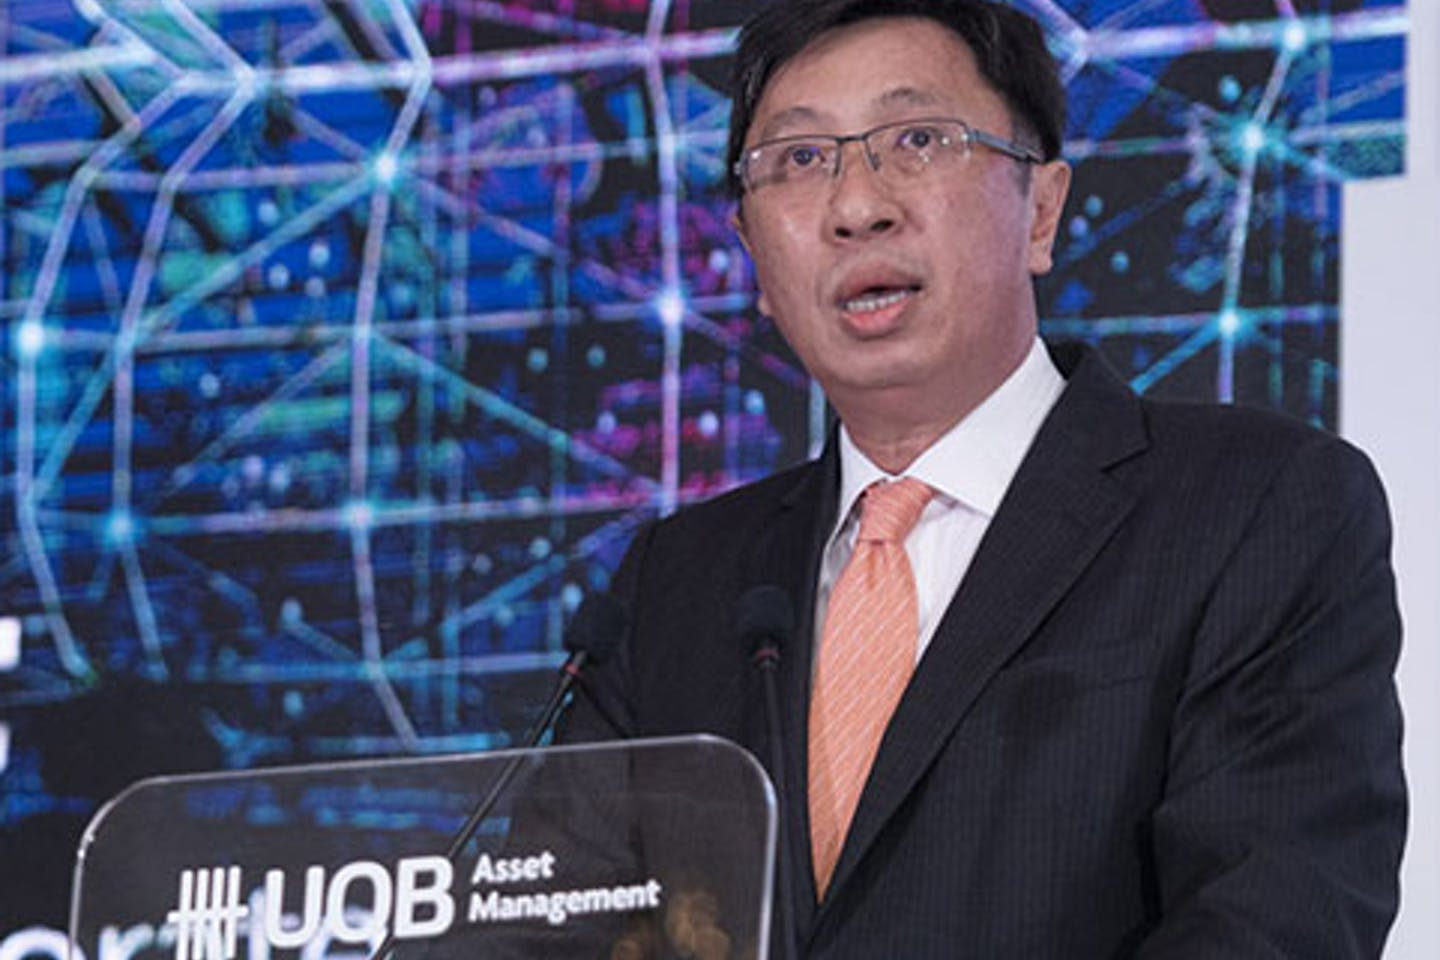 Thio Boon Kiat, CEO of UOB Asset Management